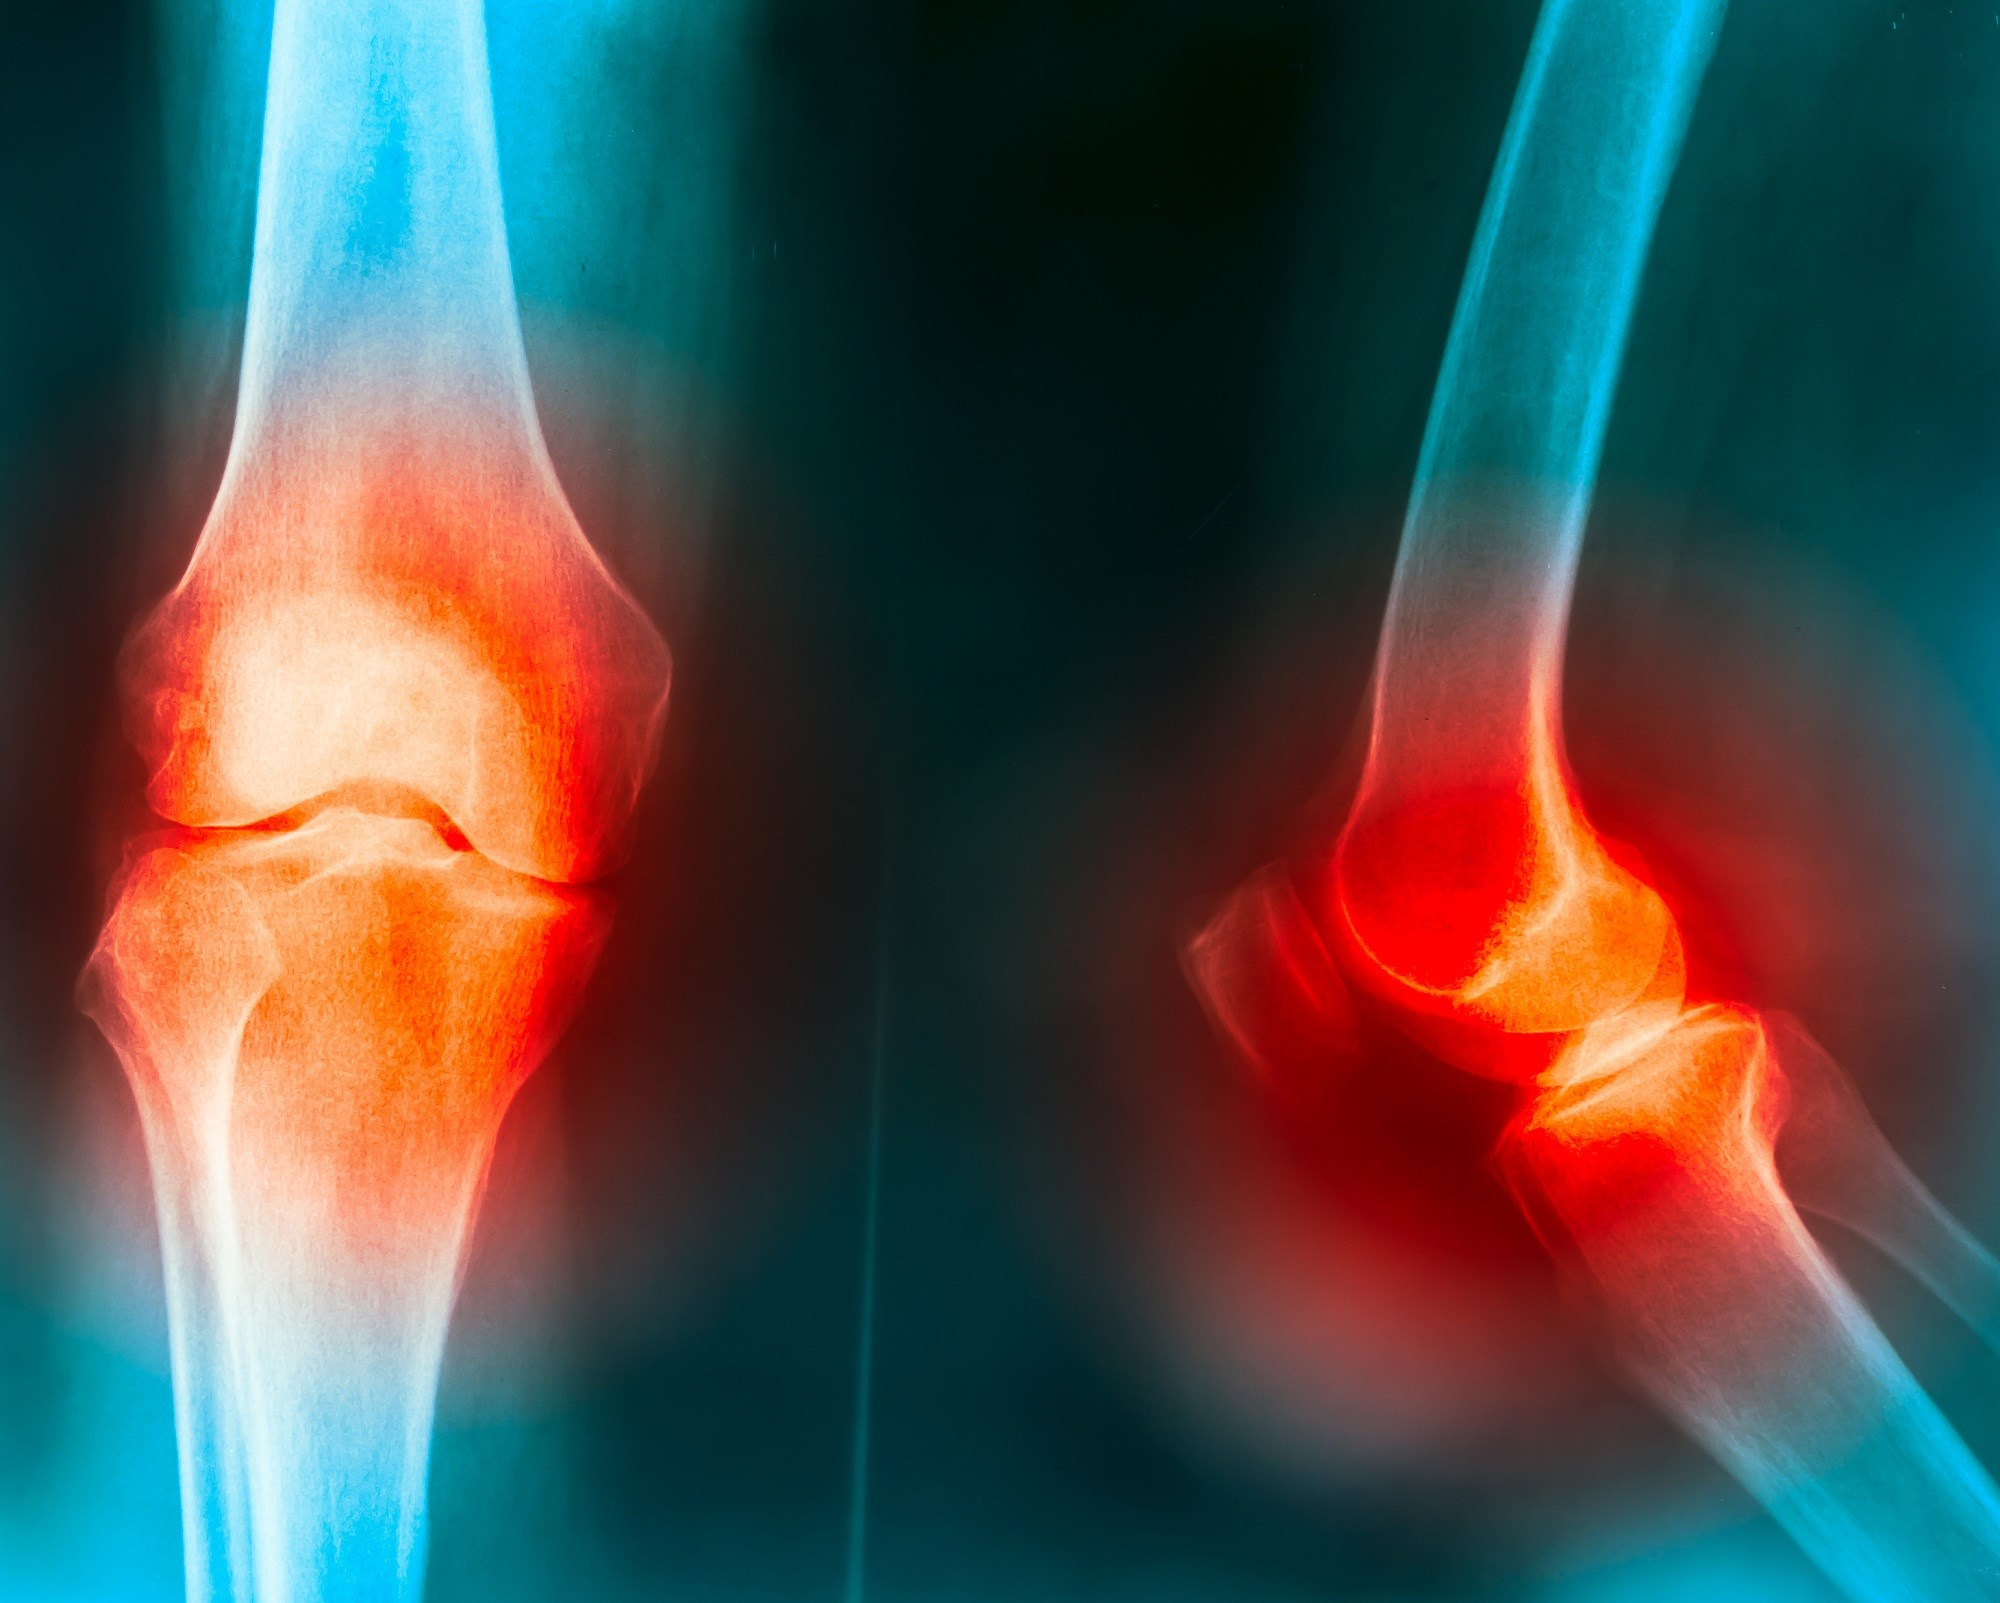 No Regional Differences of Stress Distribution in Distal Femur in Advanced Osteoarthritis